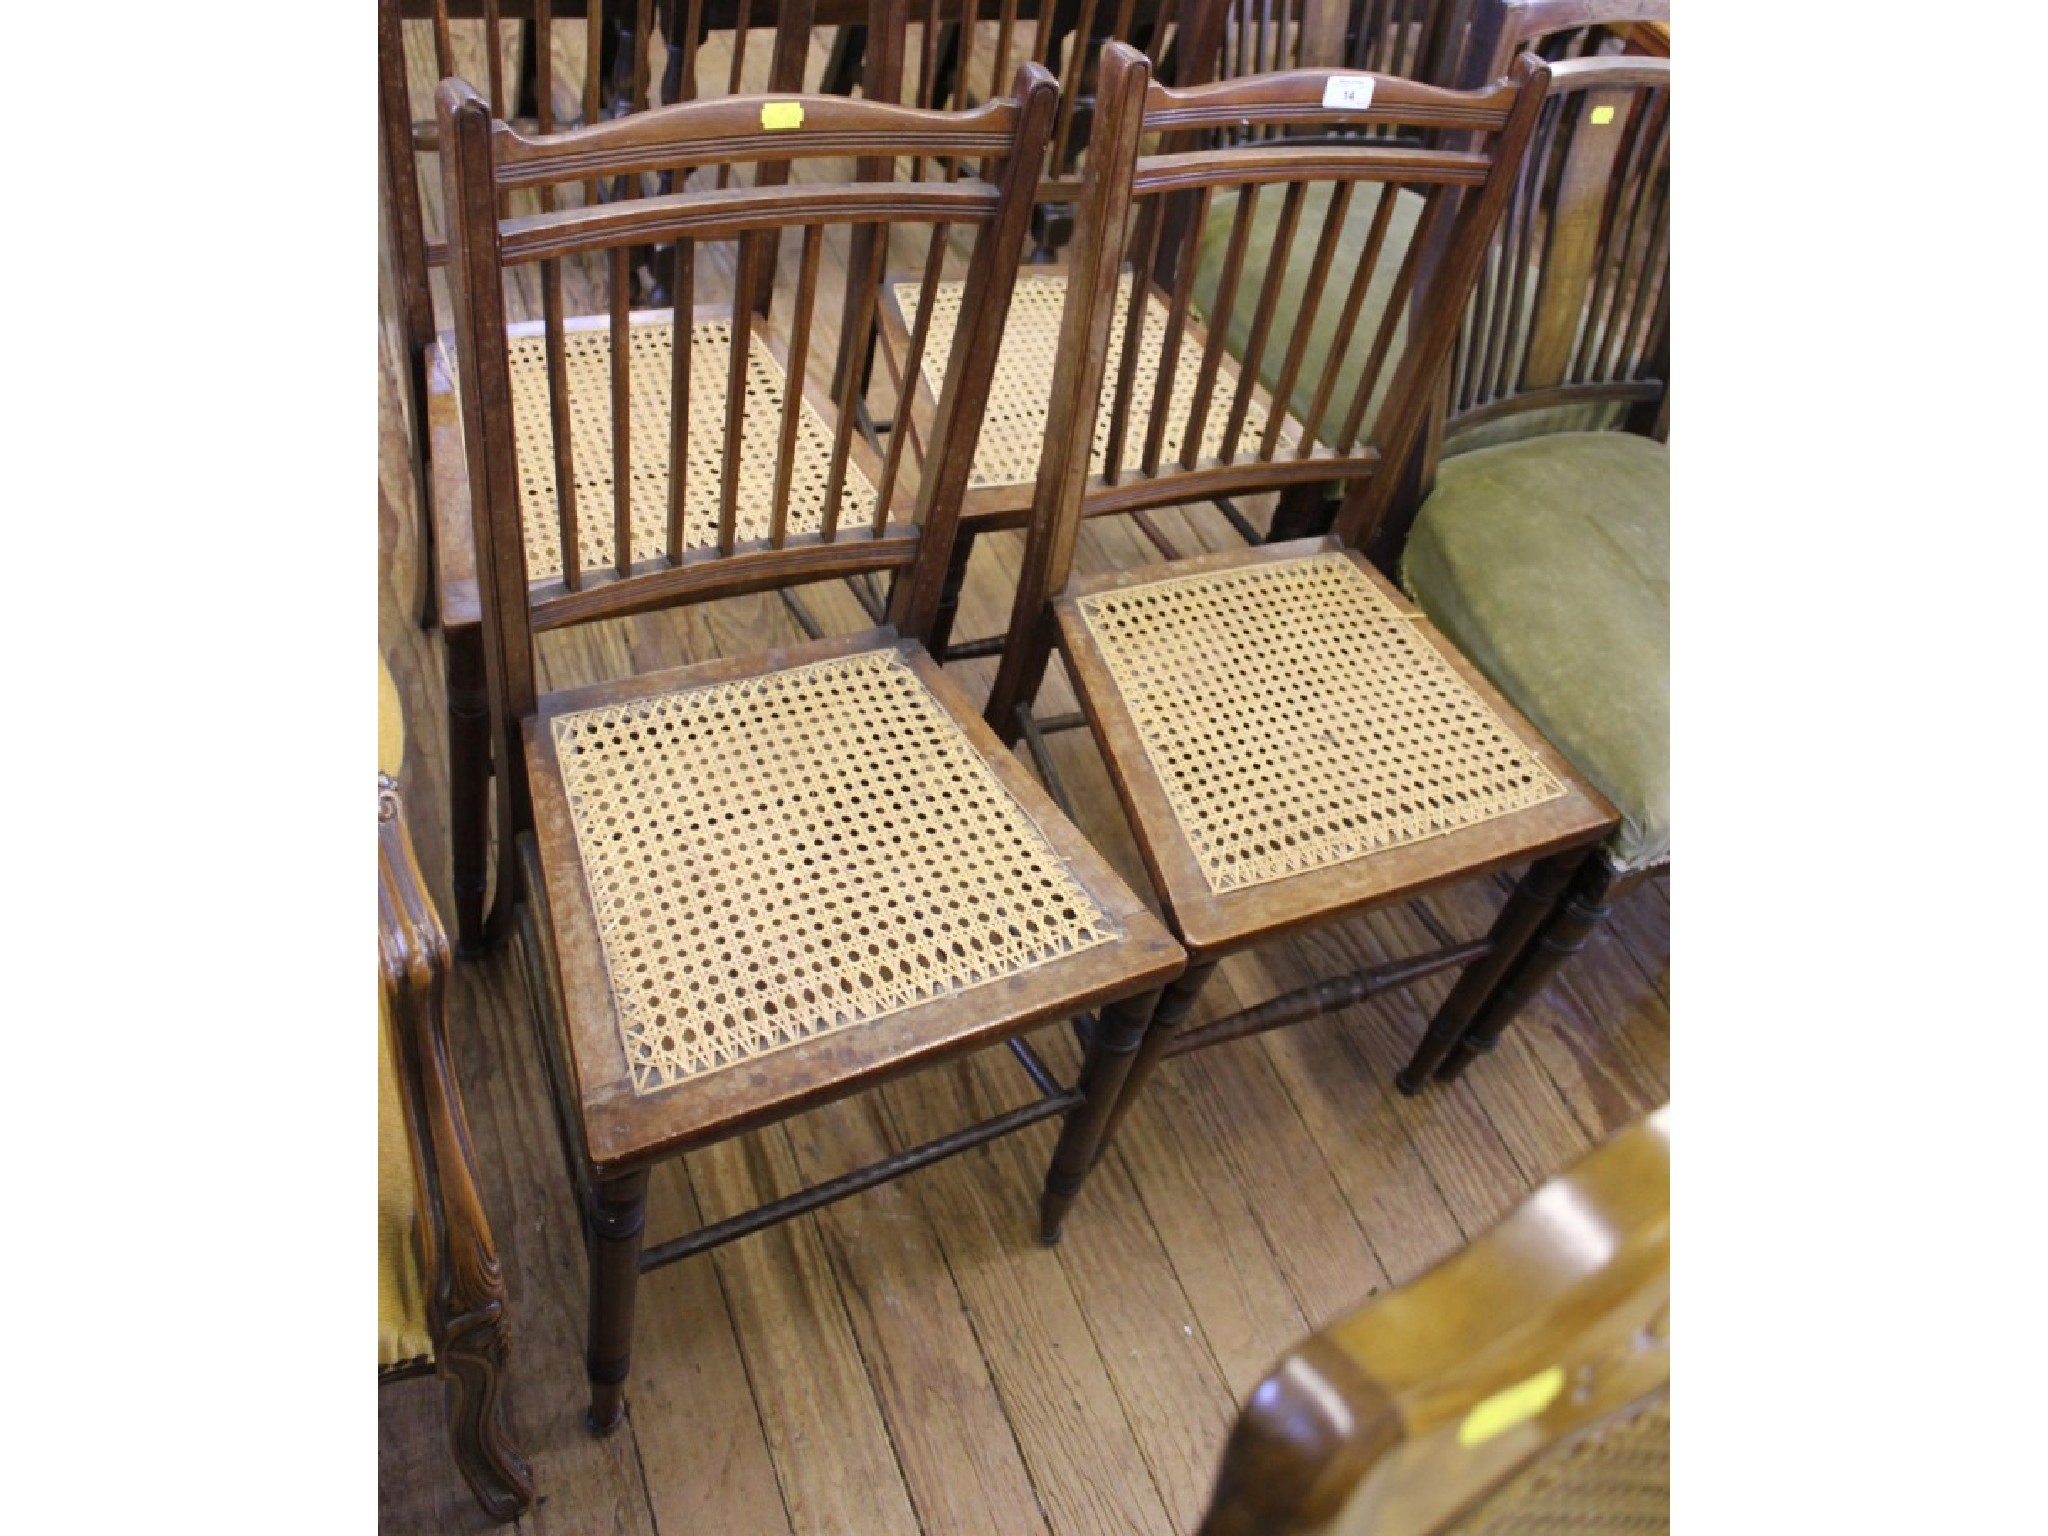 Four 1920's bedroom chairs with cane seats